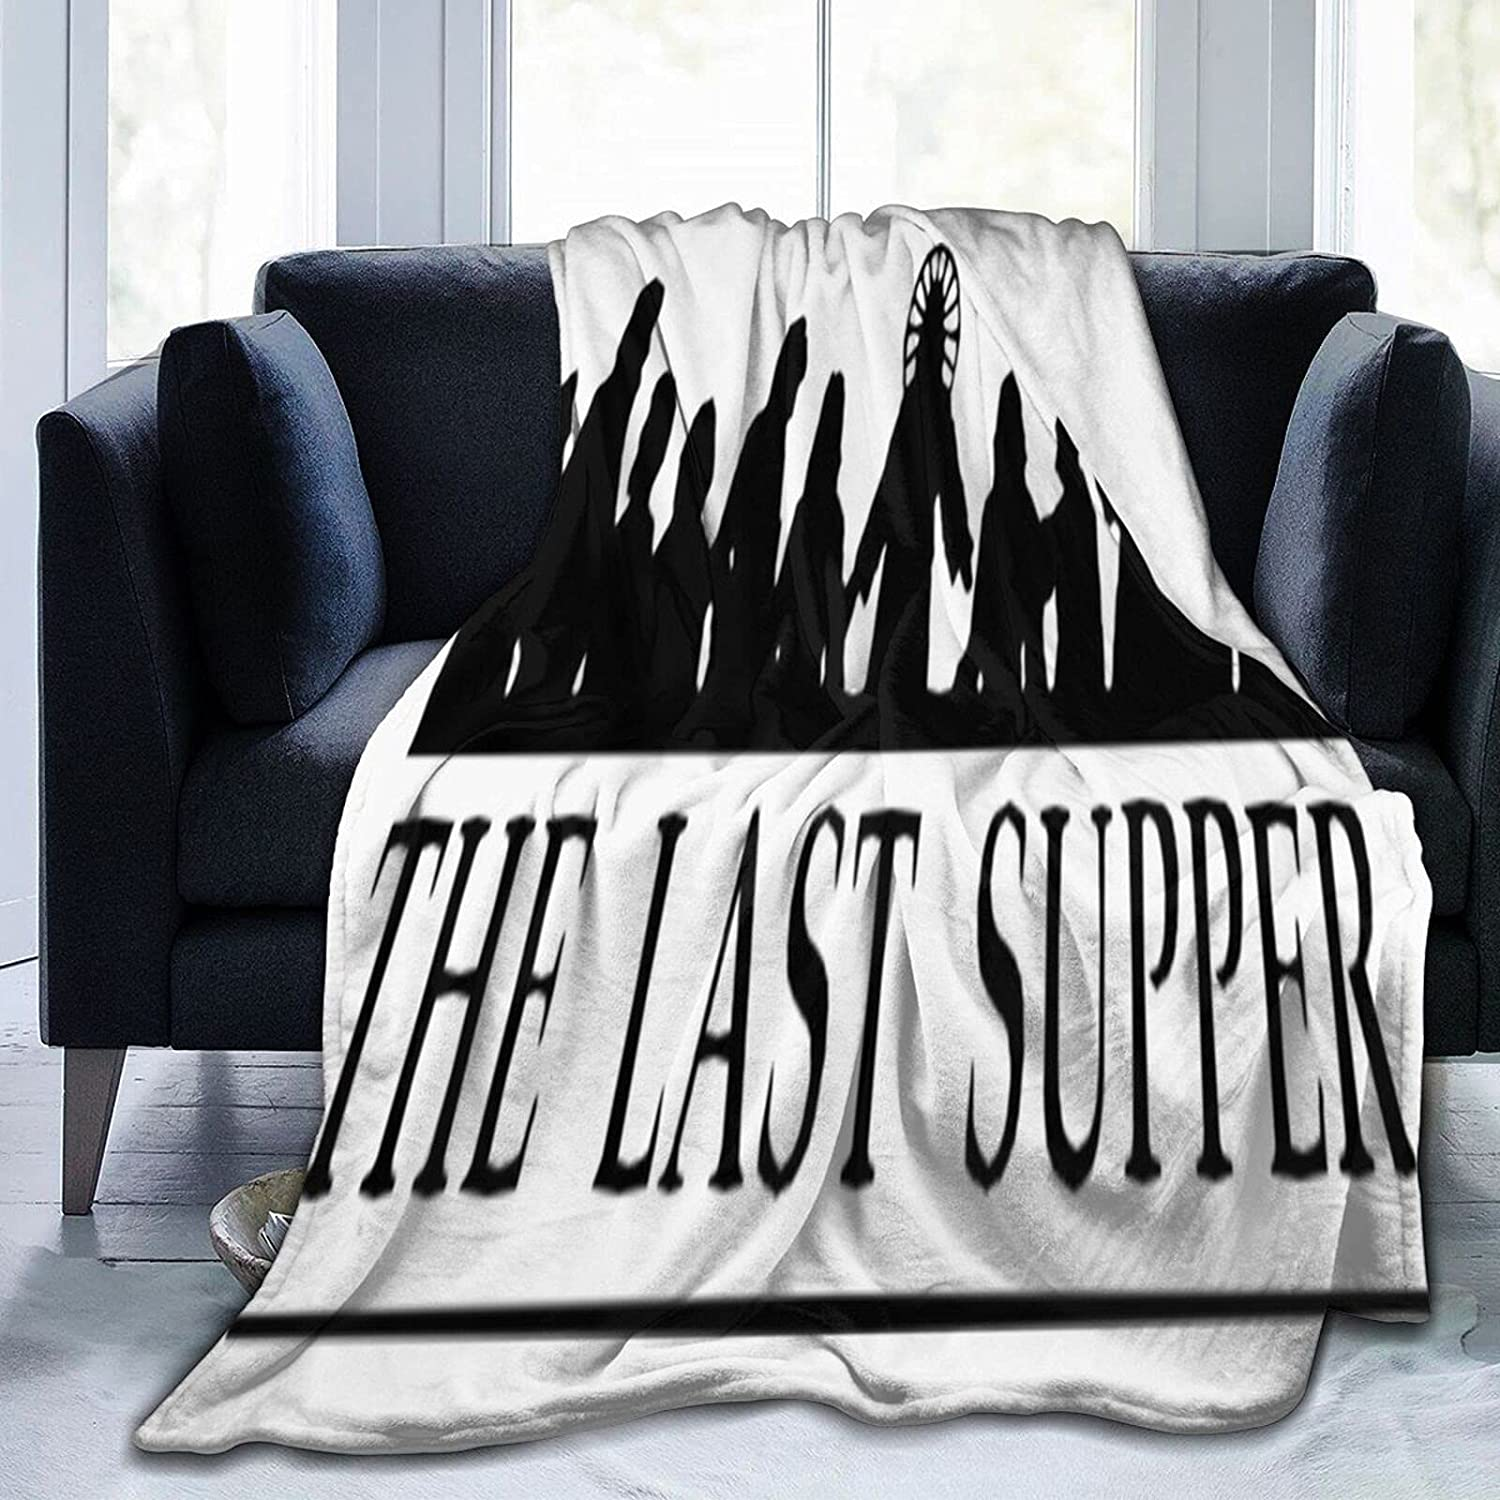 Last A surprise price is realized Supper Blanket Soft and Super Comfortable B Max 40% OFF Wool Micro